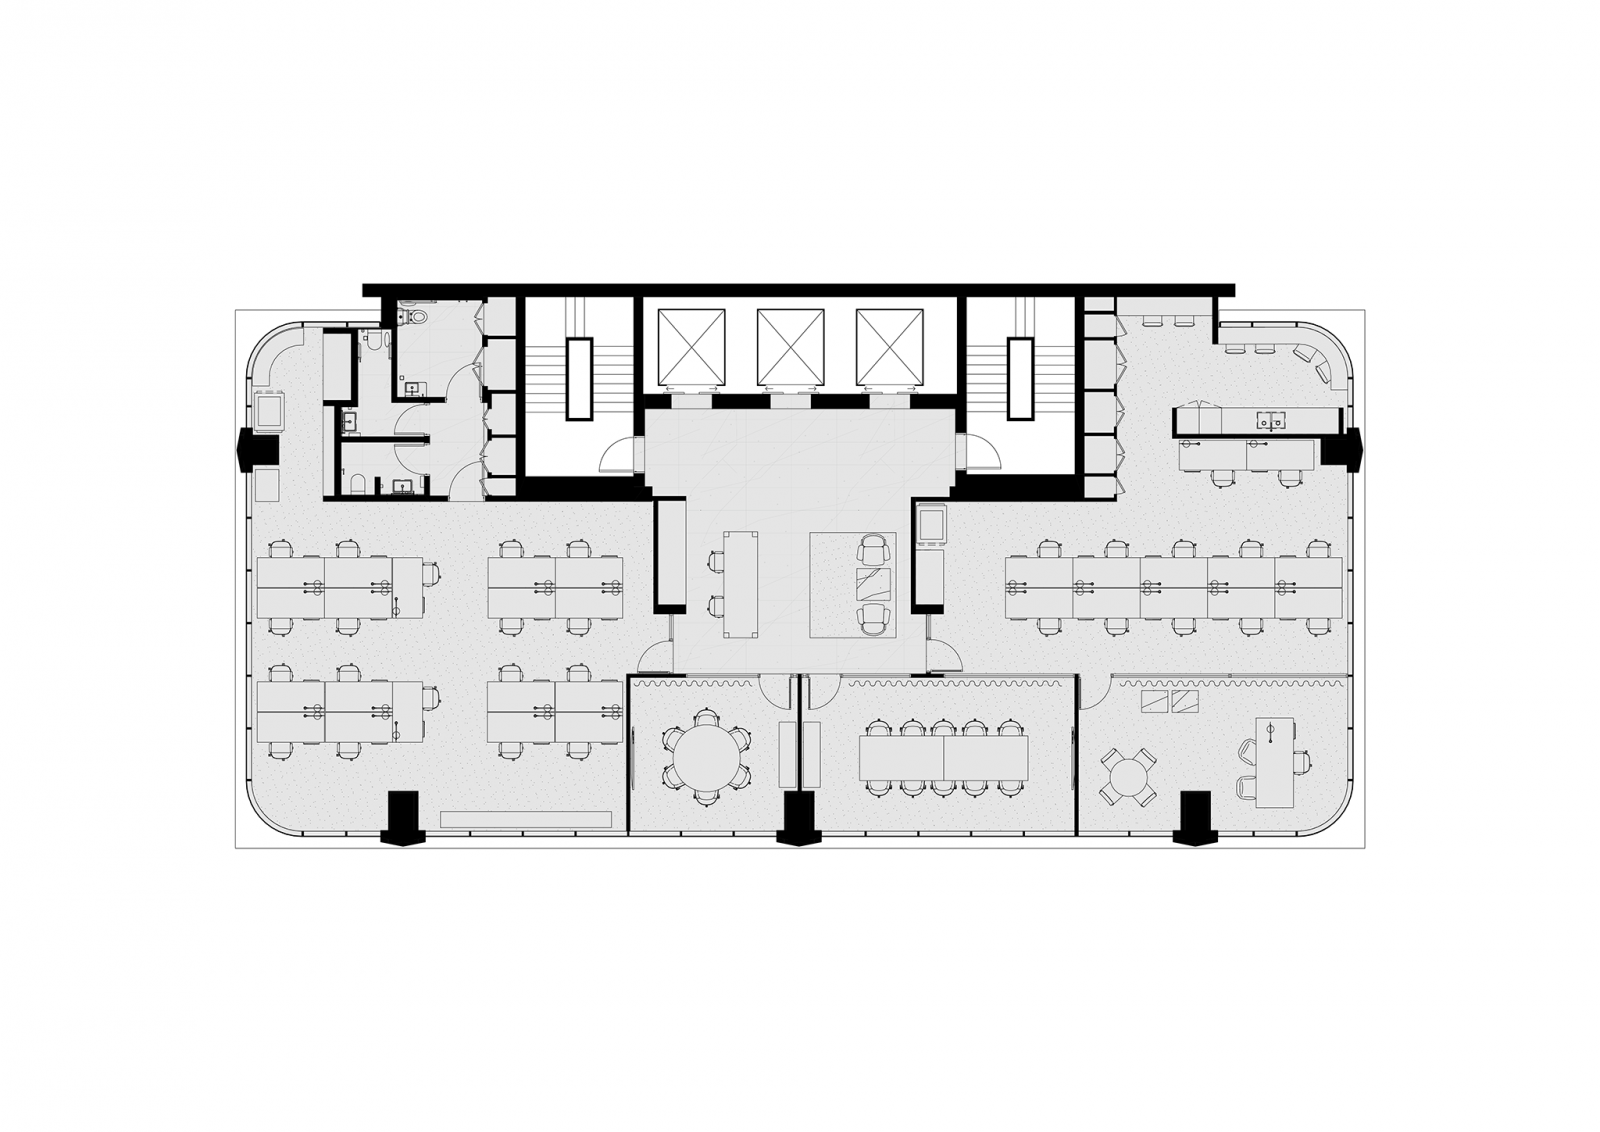 Tower floorplan, levels 10, 12, 13, 14, 16, 17 & 18, single tenancy, 1:10 population density ratio